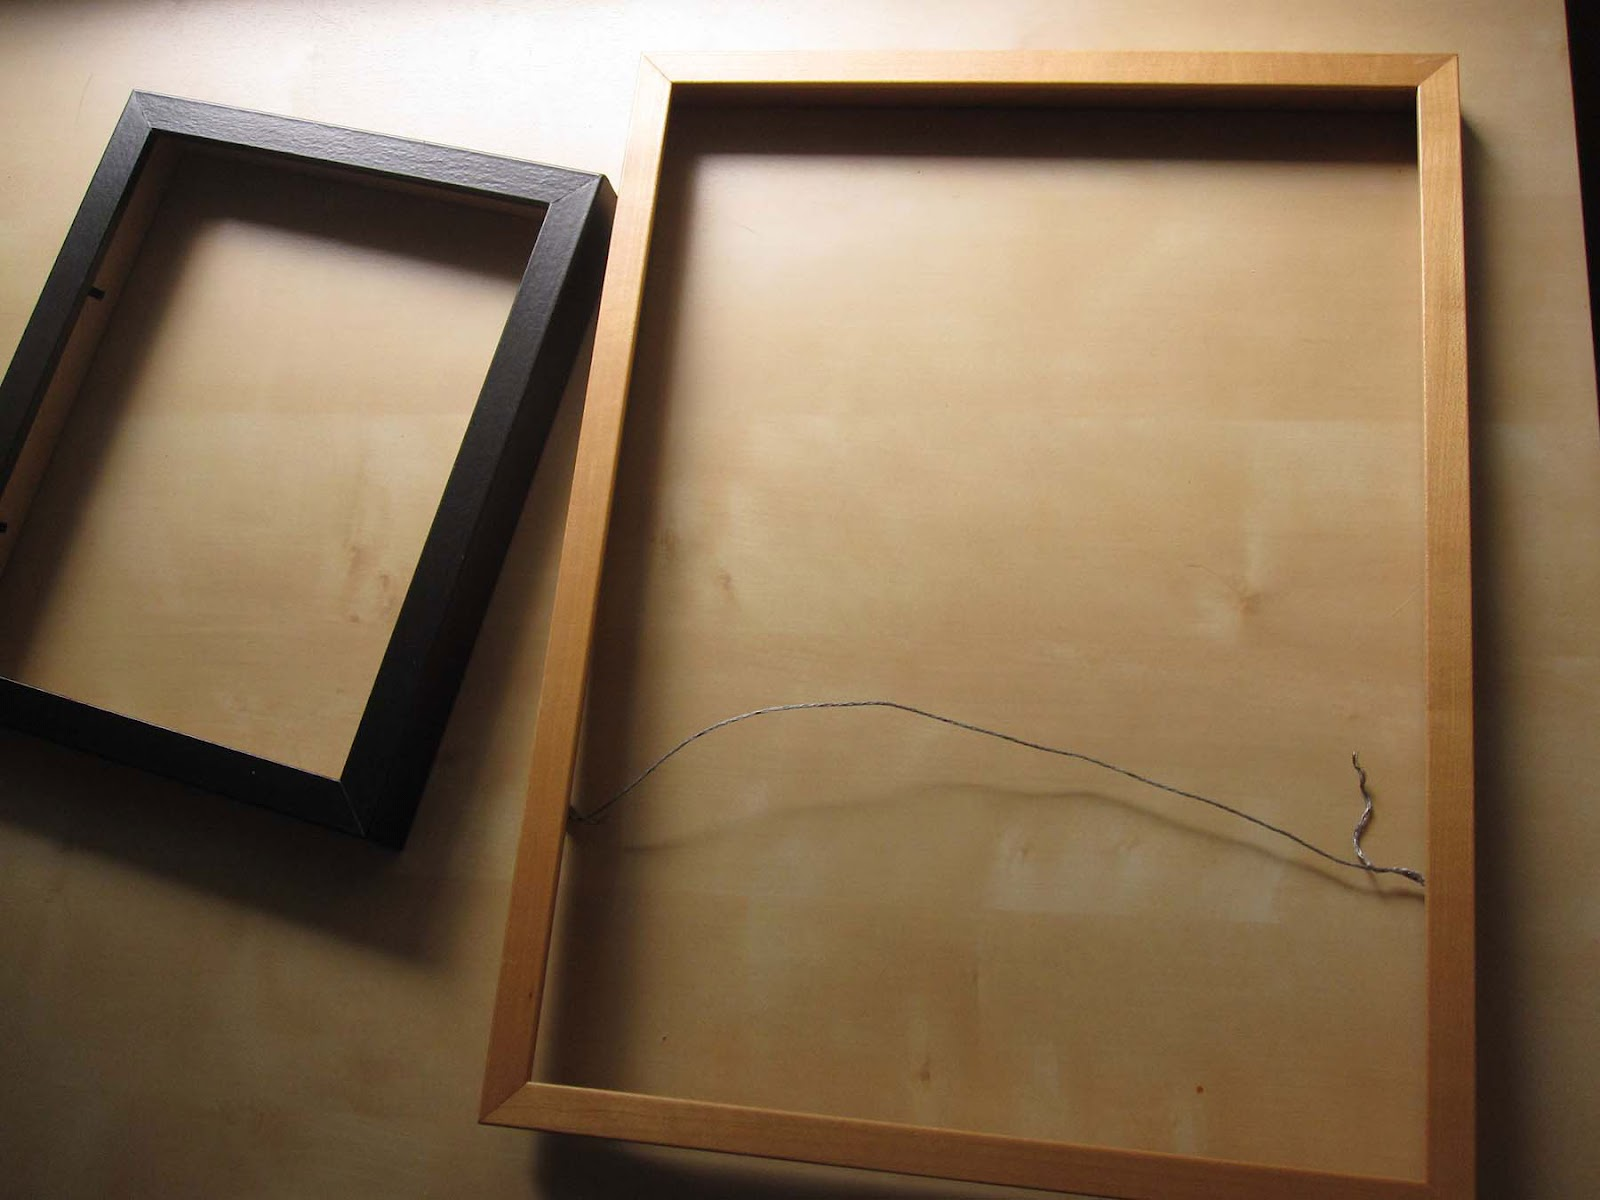 SCRAP-DC: How To: Make a Frame Jewelry Holder